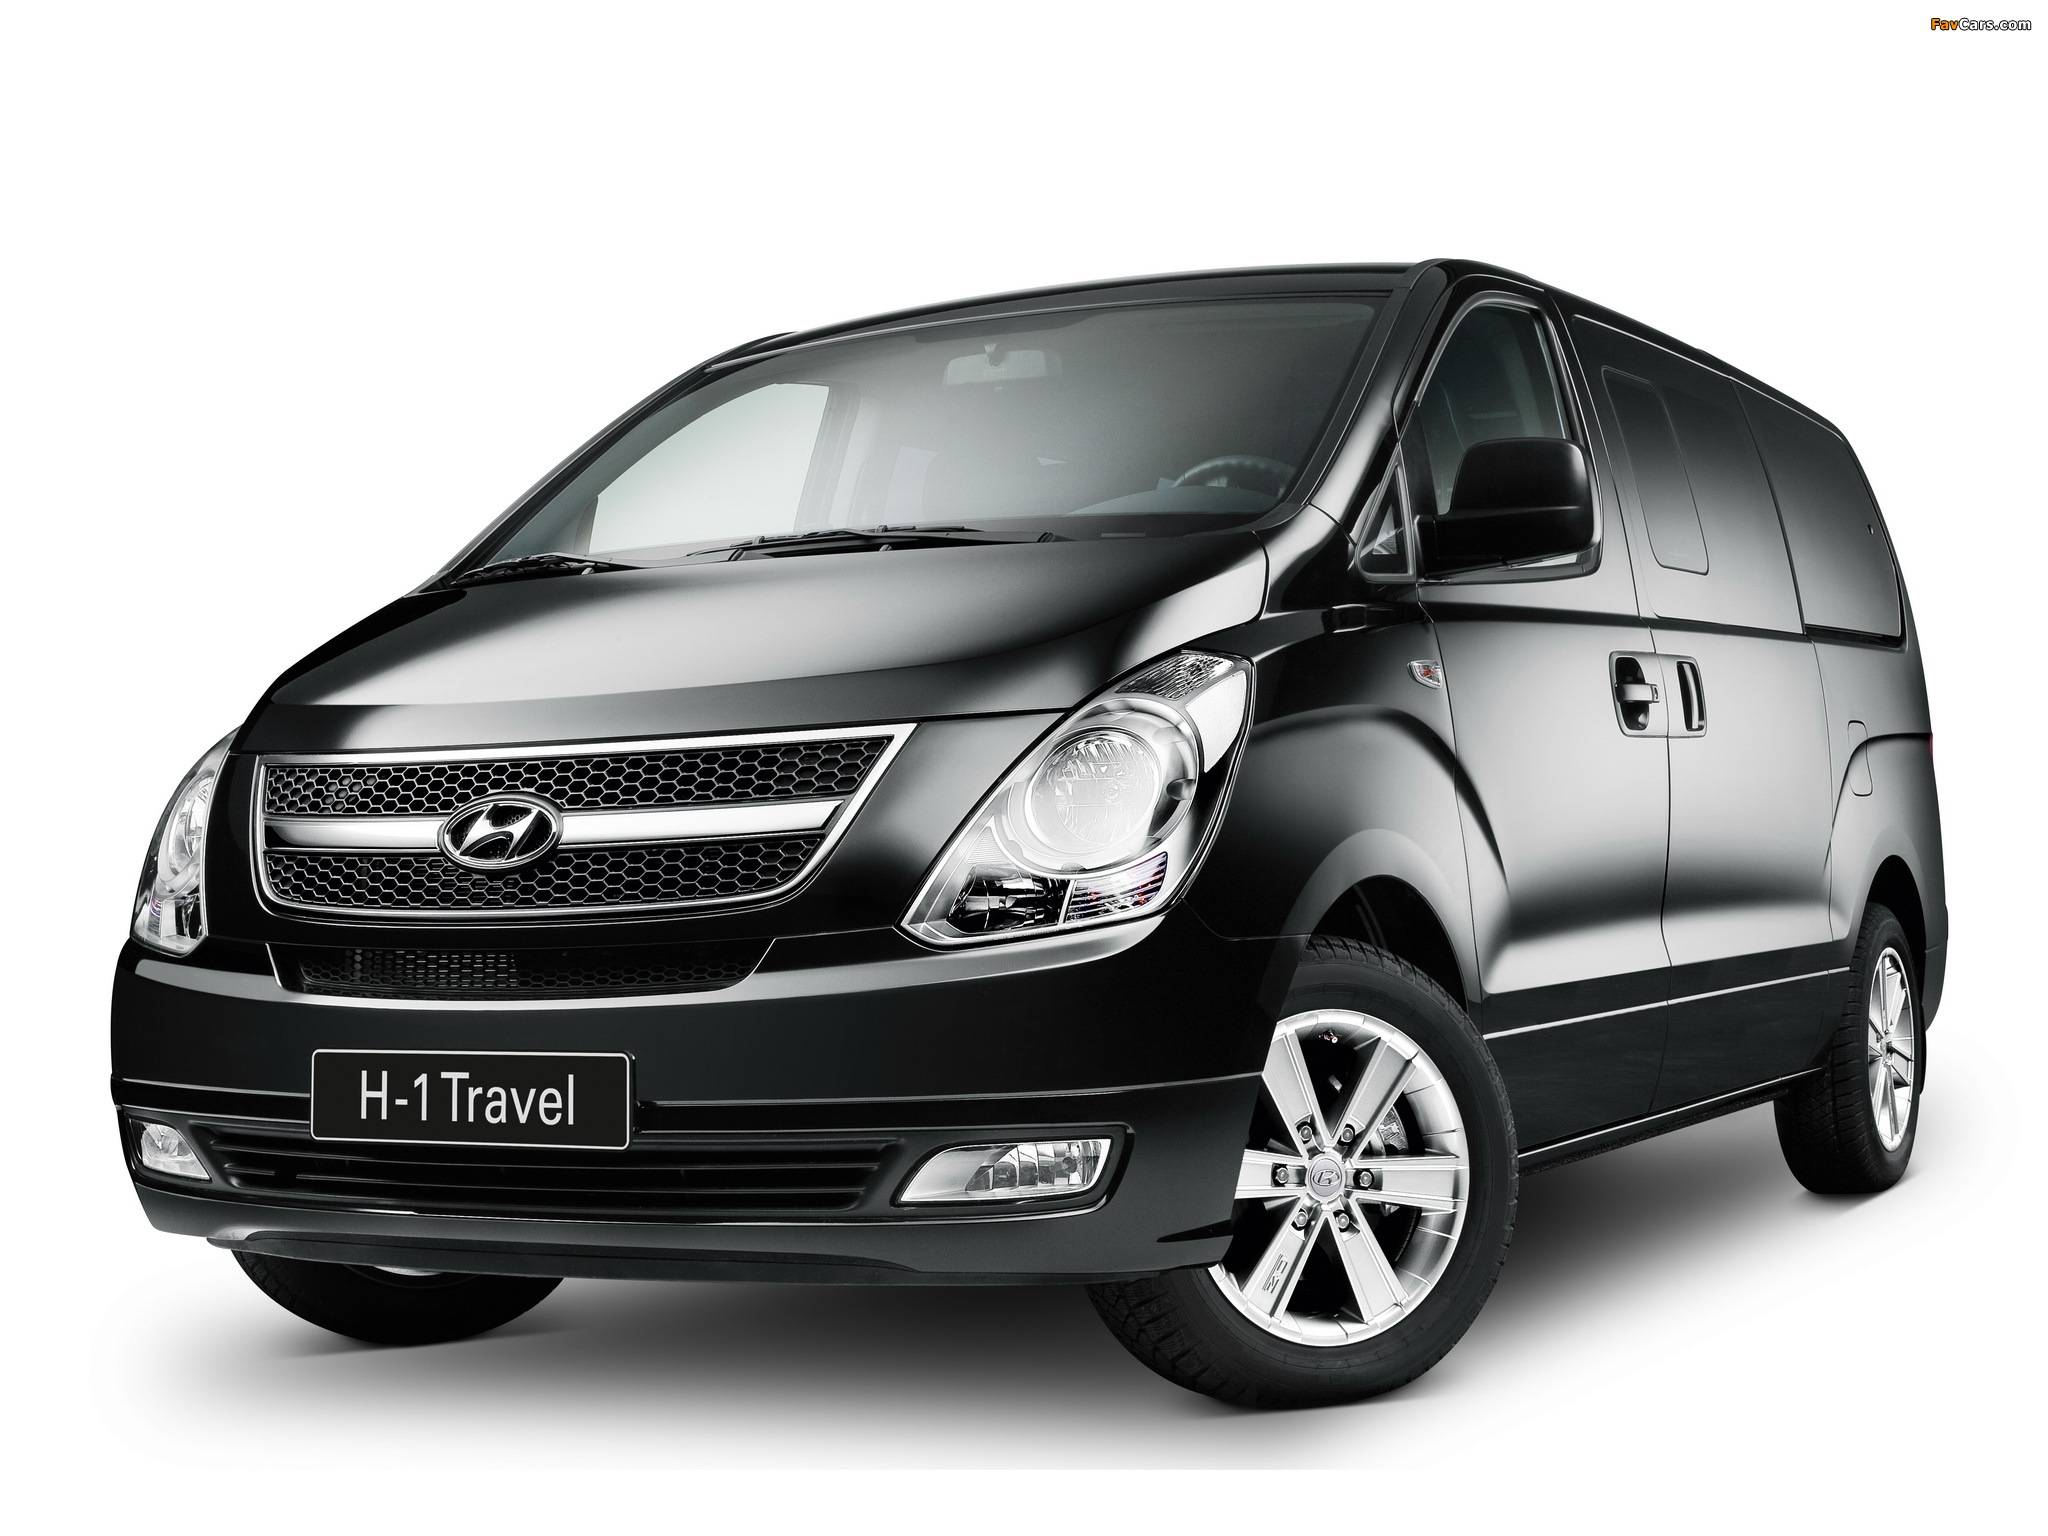 hyundai h 1 travel premium 2009 wallpapers 2048x1536. Black Bedroom Furniture Sets. Home Design Ideas